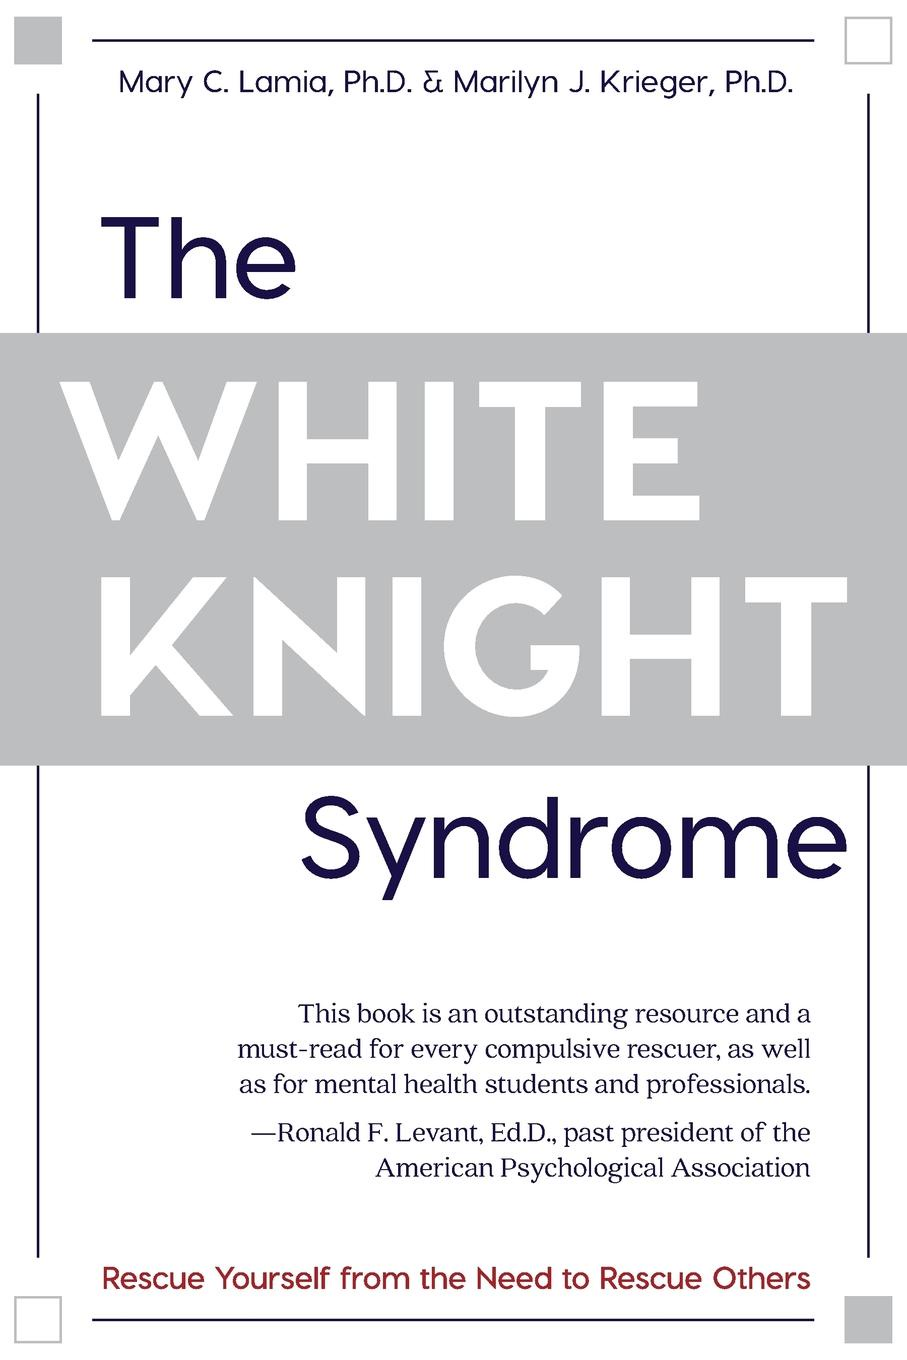 Mary C. Lamia, Marilyn J. Krieger The White Knight Syndrome. Rescuing Yourself from Your Need to Rescue Others стоимость